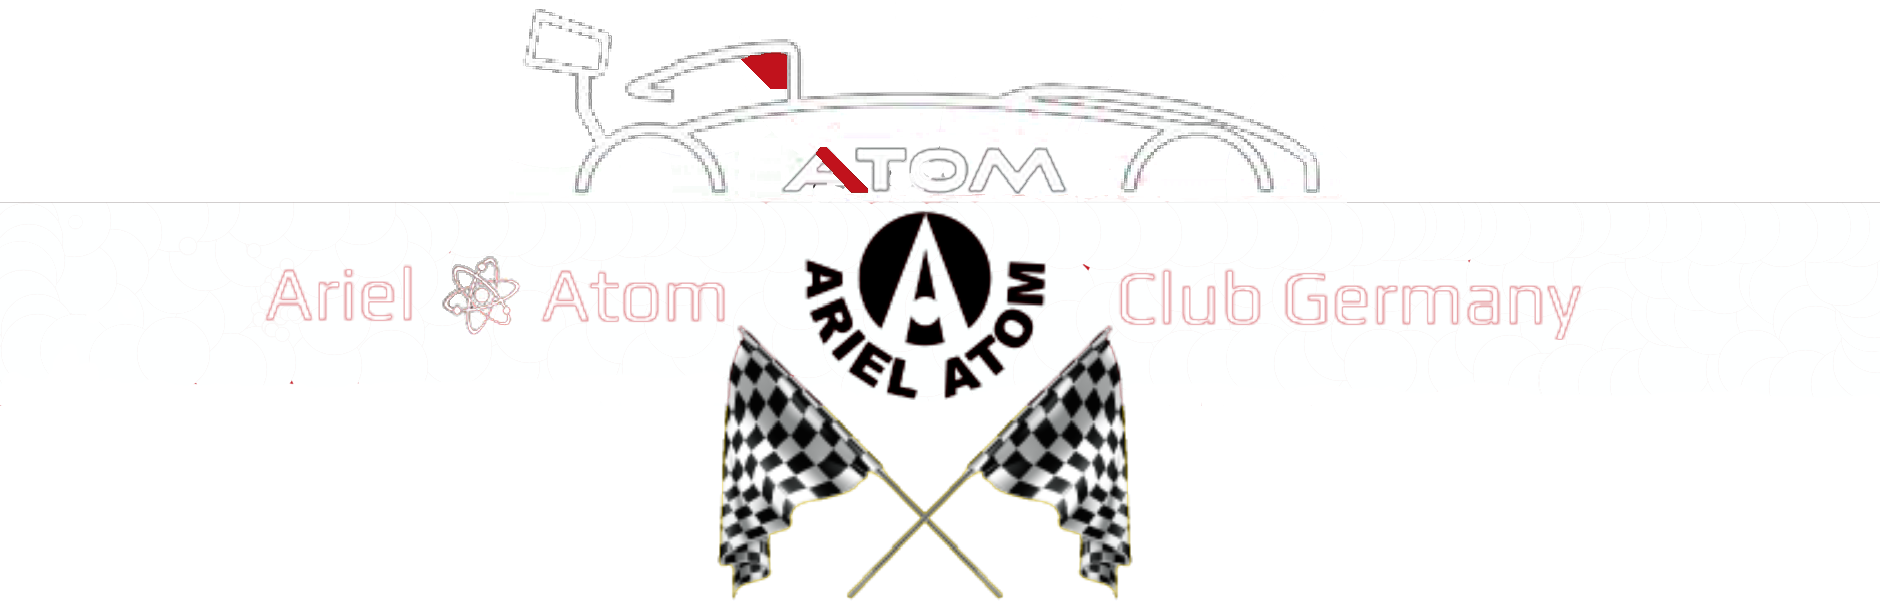 Logo des Ariel Atom Clubs Germany